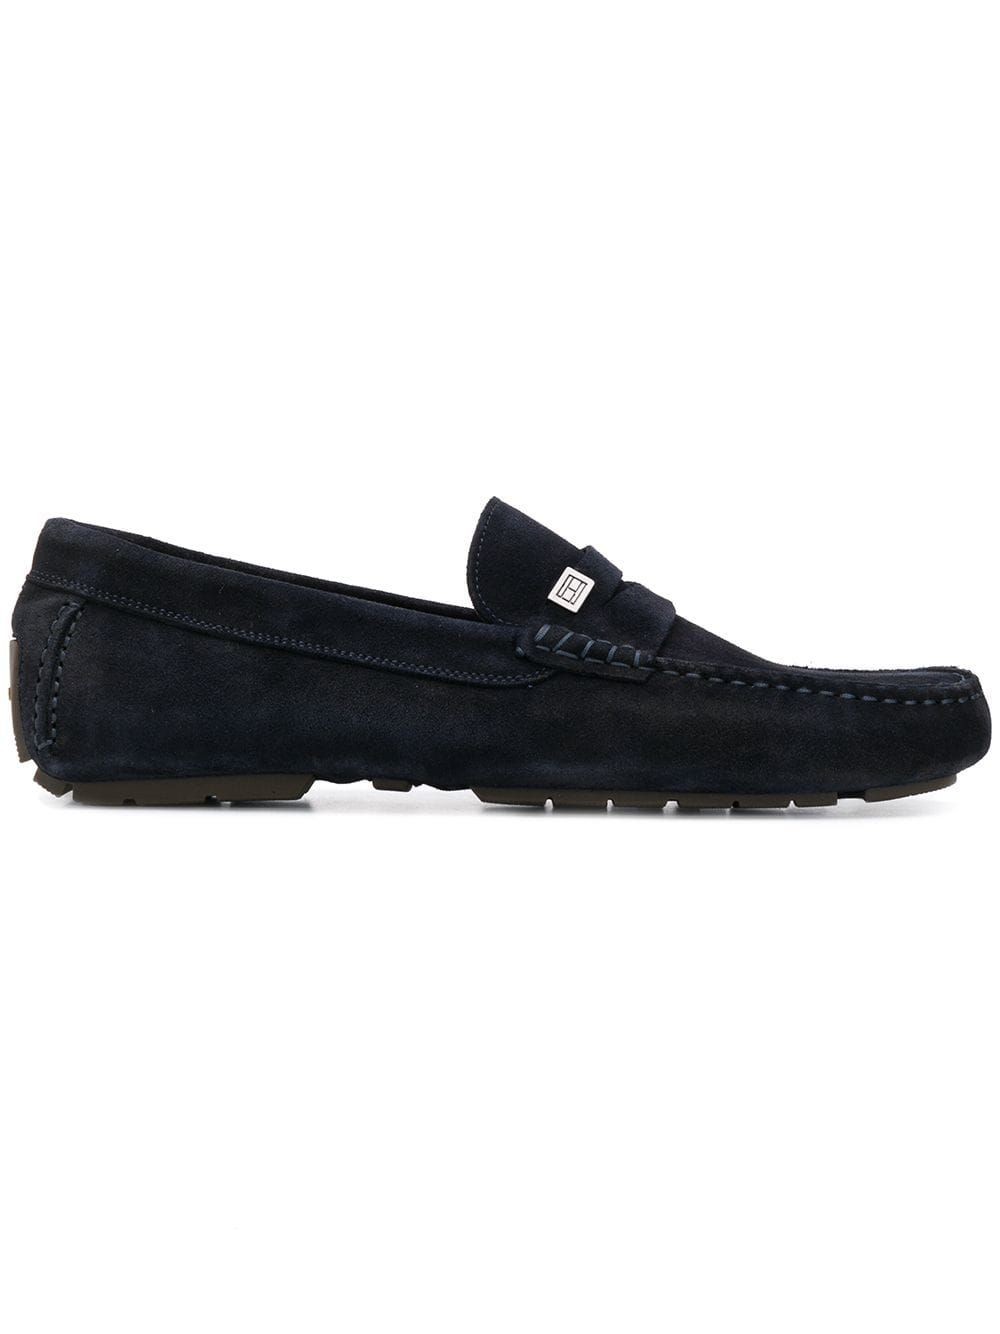 a0e33e340 TOMMY HILFIGER TOMMY HILFIGER CLASSIC LOAFERS - BLUE.  tommyhilfiger  shoes